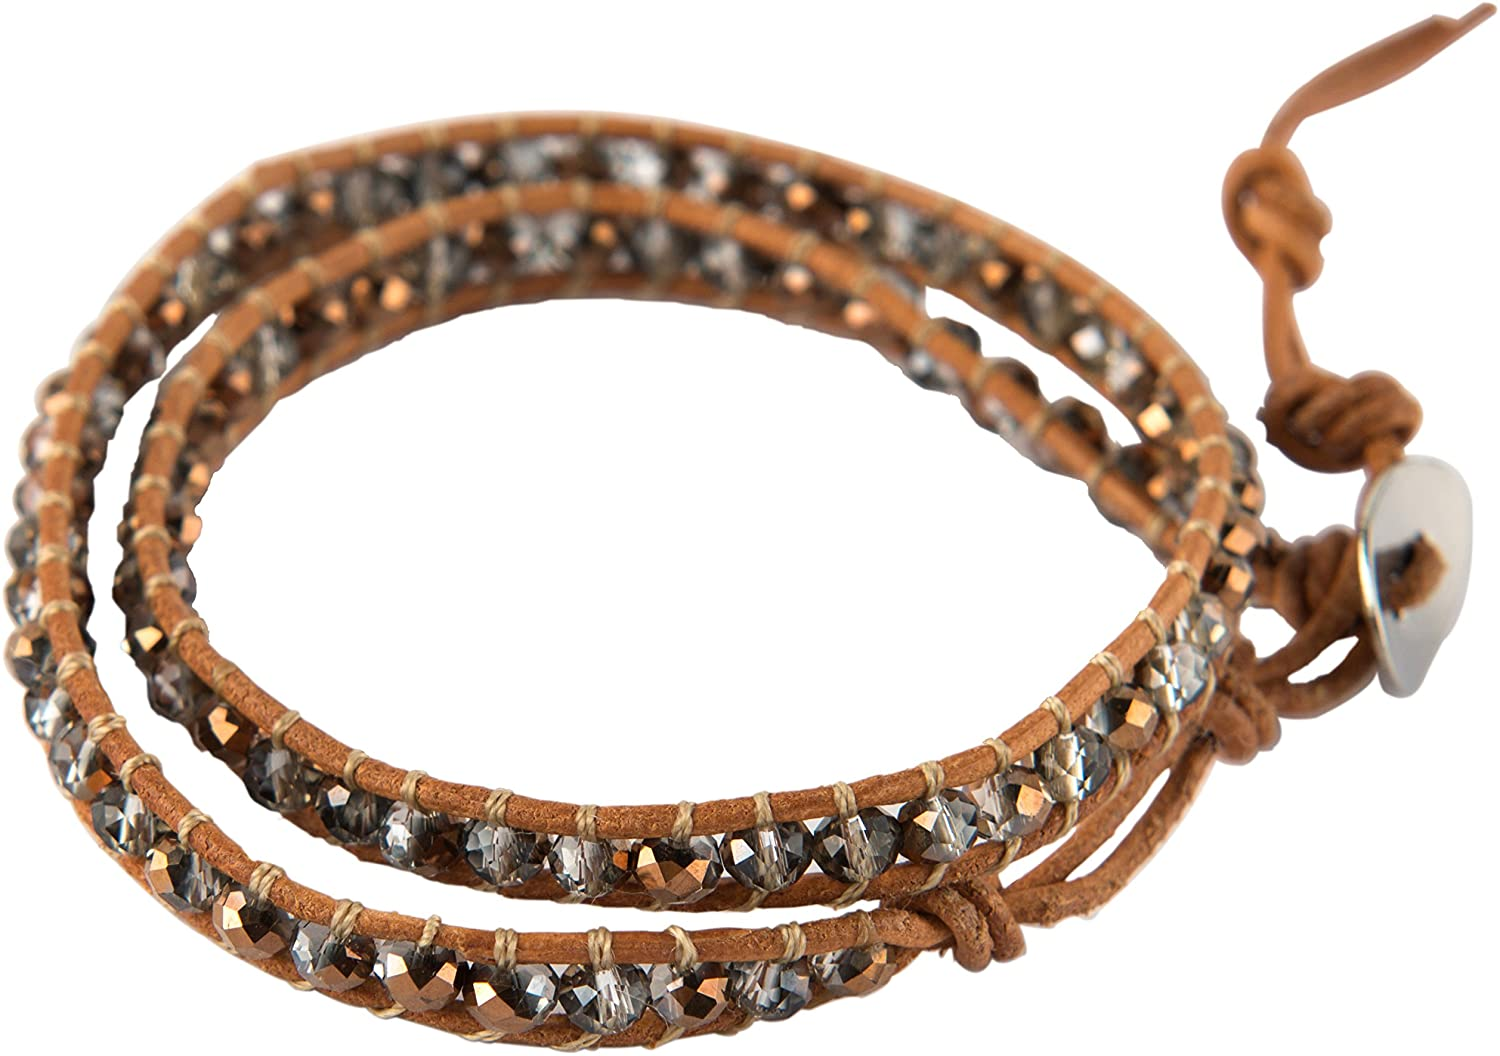 Vexed Soul Handmade Wrap Bracelet with Supple Brown Leather and Bright Faceted Crystal Beads